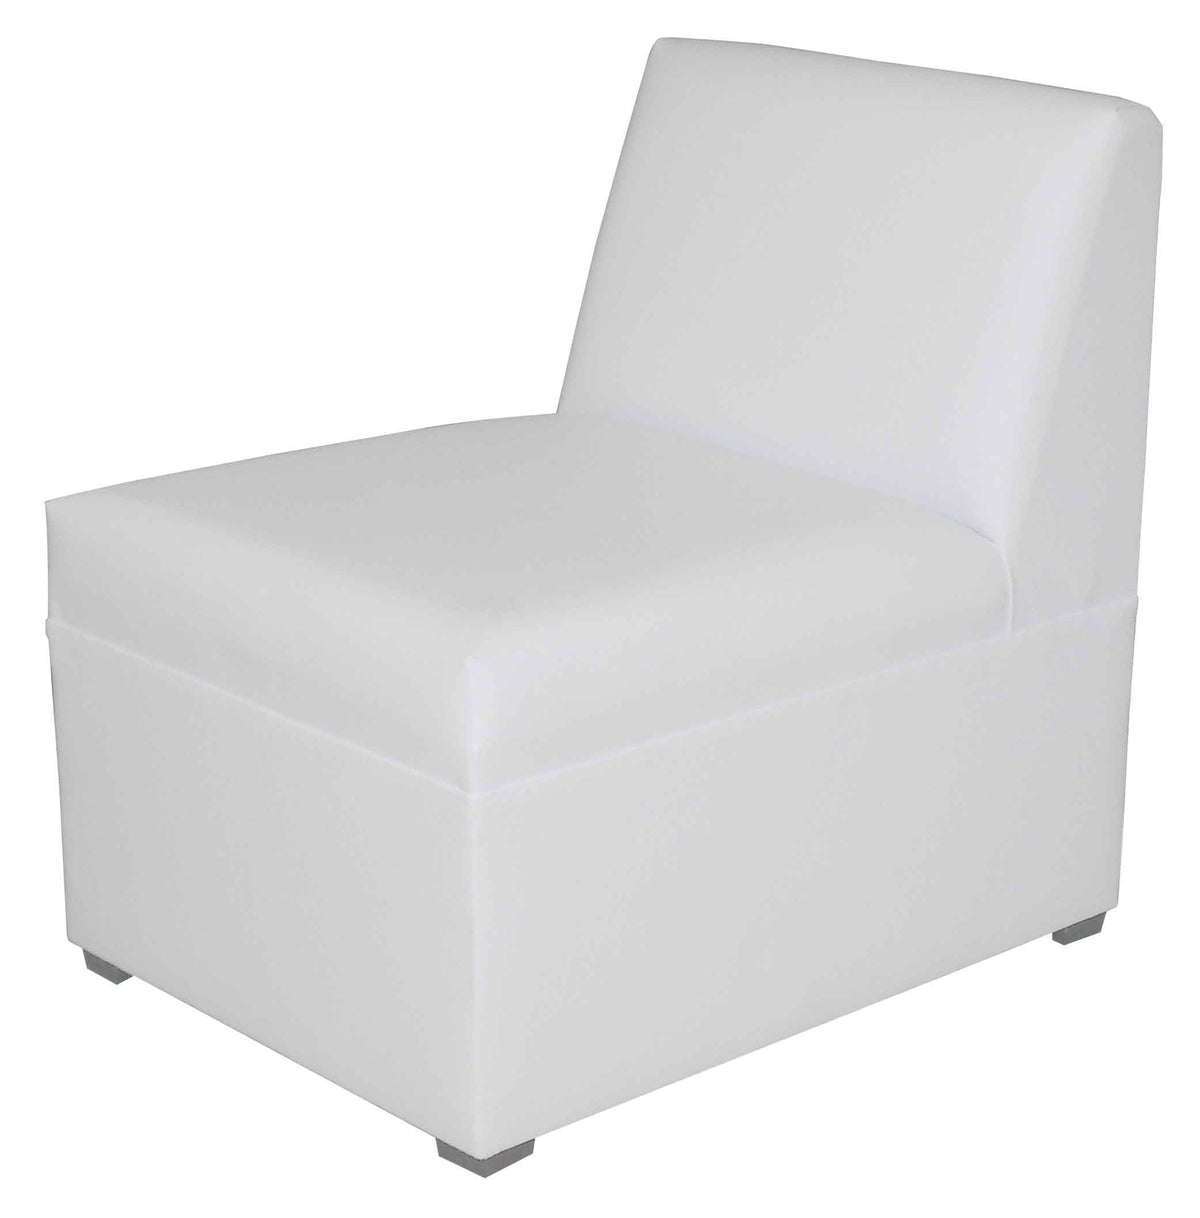 SOFA L-005 1P - offimobile